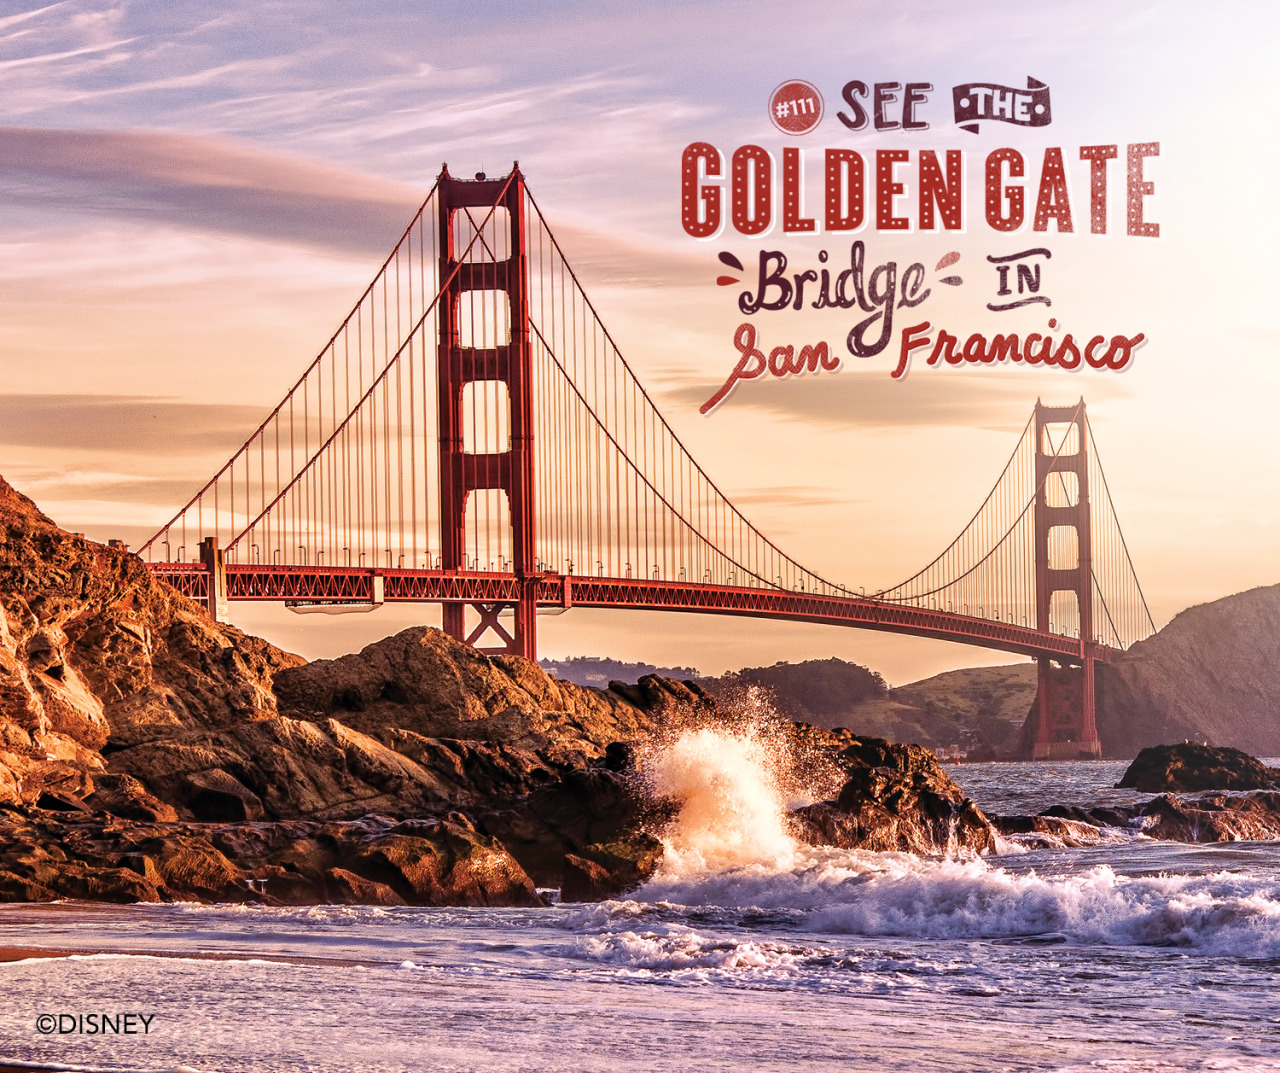 See The Golden Gate Bridge in San Francisco